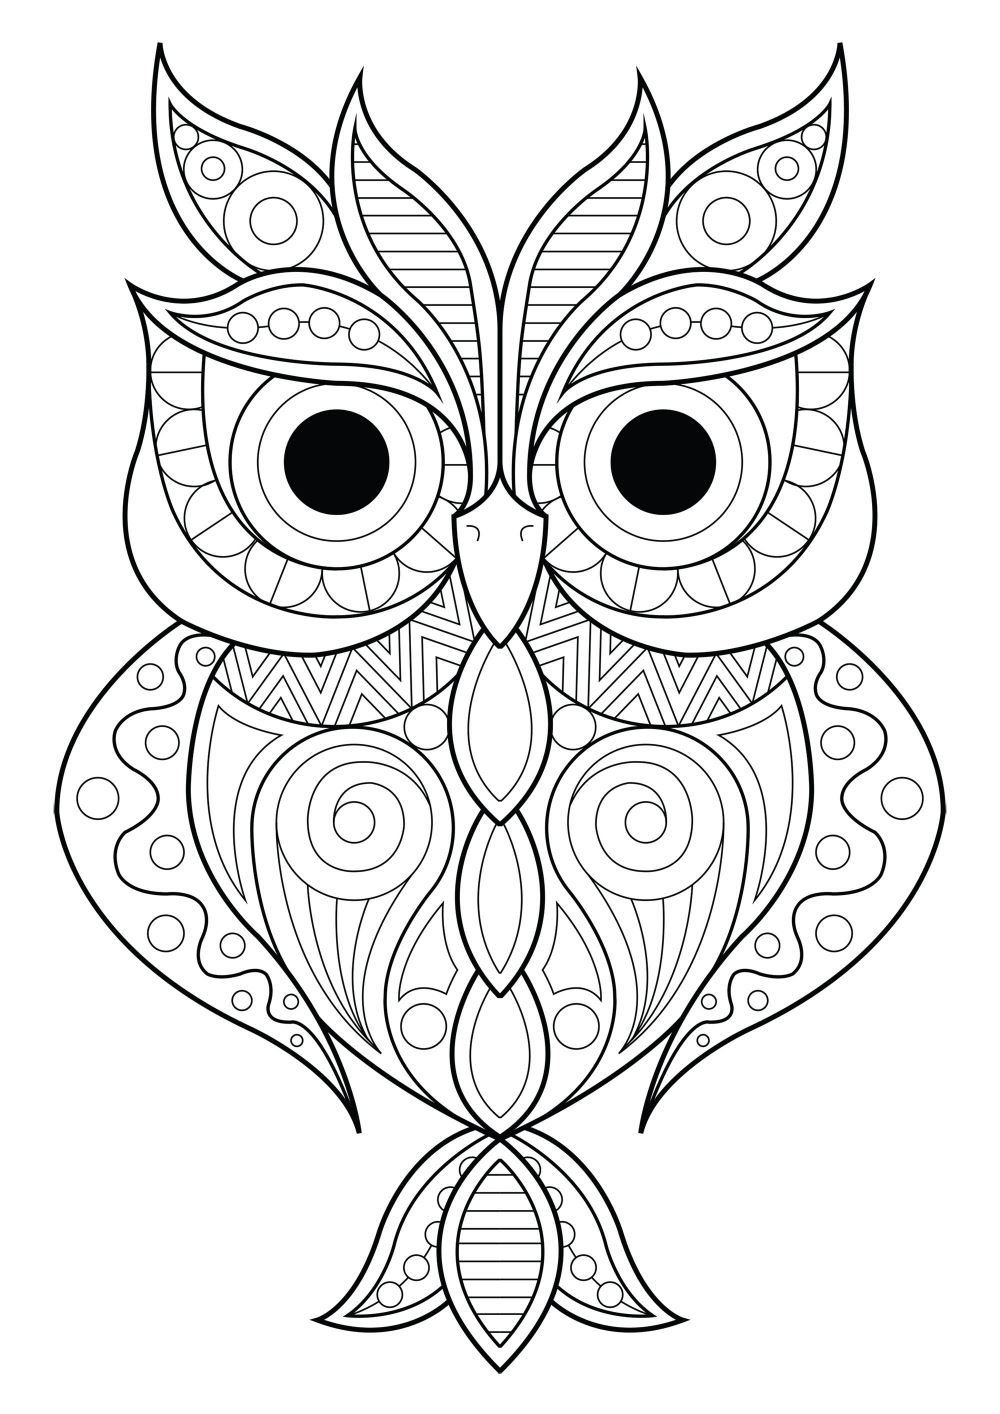 Owl Simple Patterns 2 Owl With Various Different Patterns From The Gallery Owls Artist Lucie Jus Owl Coloring Pages Animal Coloring Pages Owls Drawing